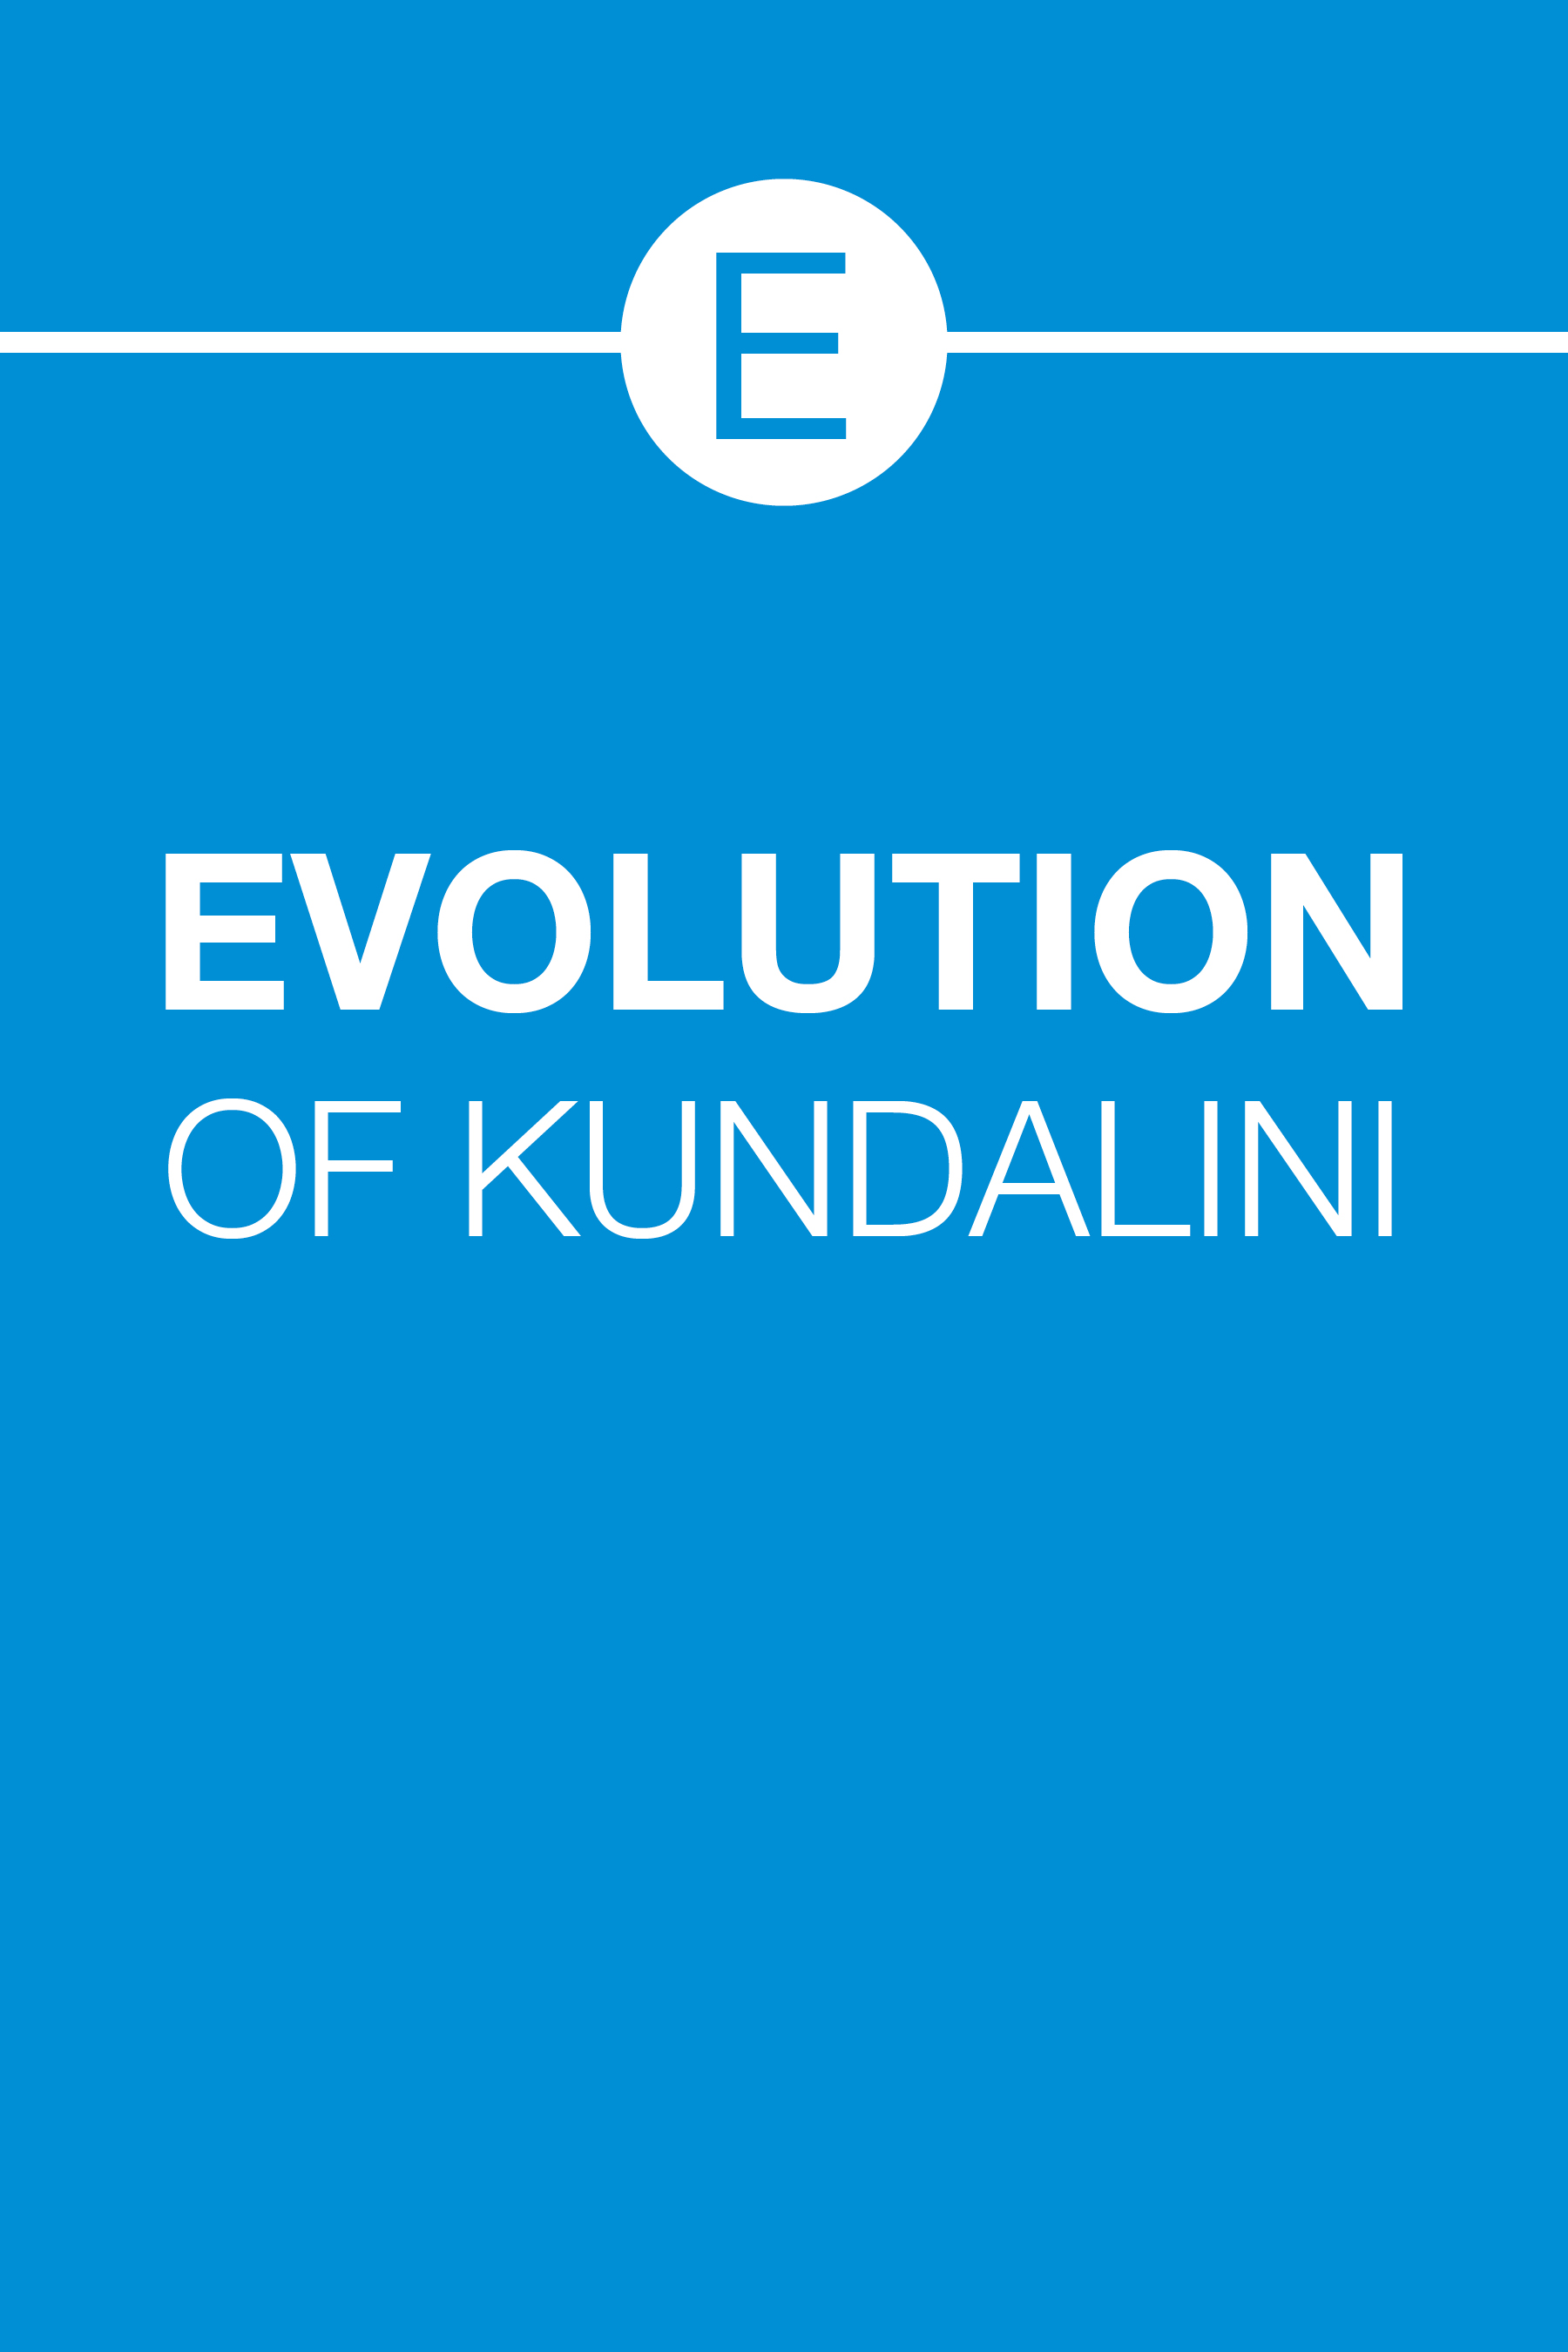 EVOLUTION OF KUNDALINI